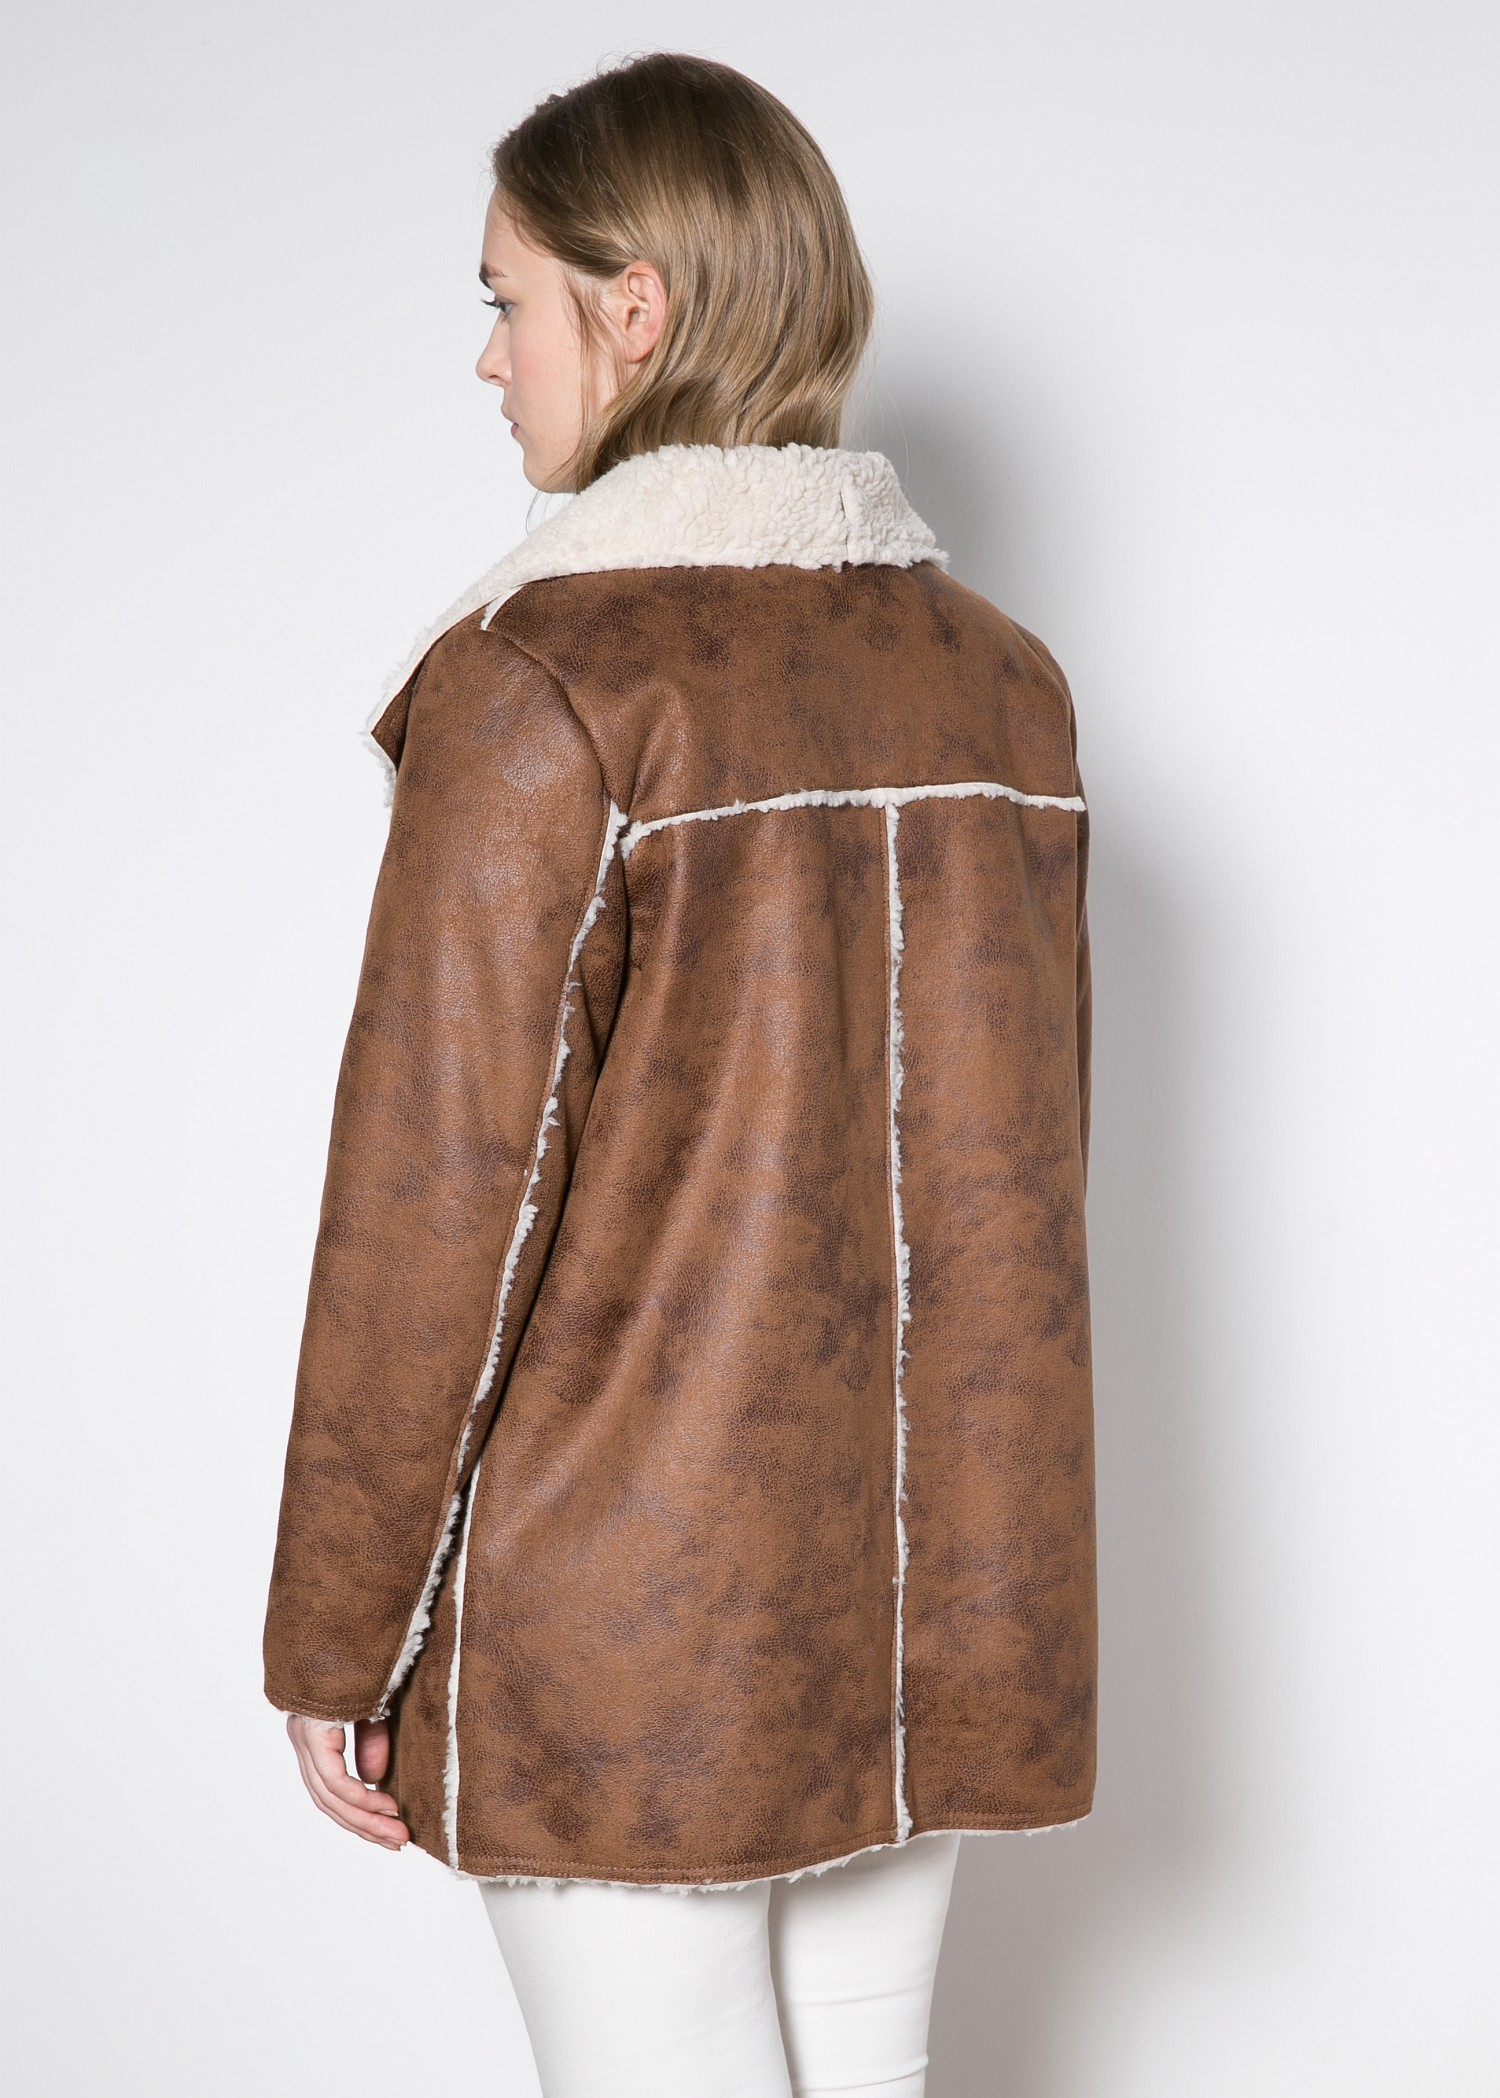 Violeta by mango Faux Shearling-Lined Coat in Brown | Lyst